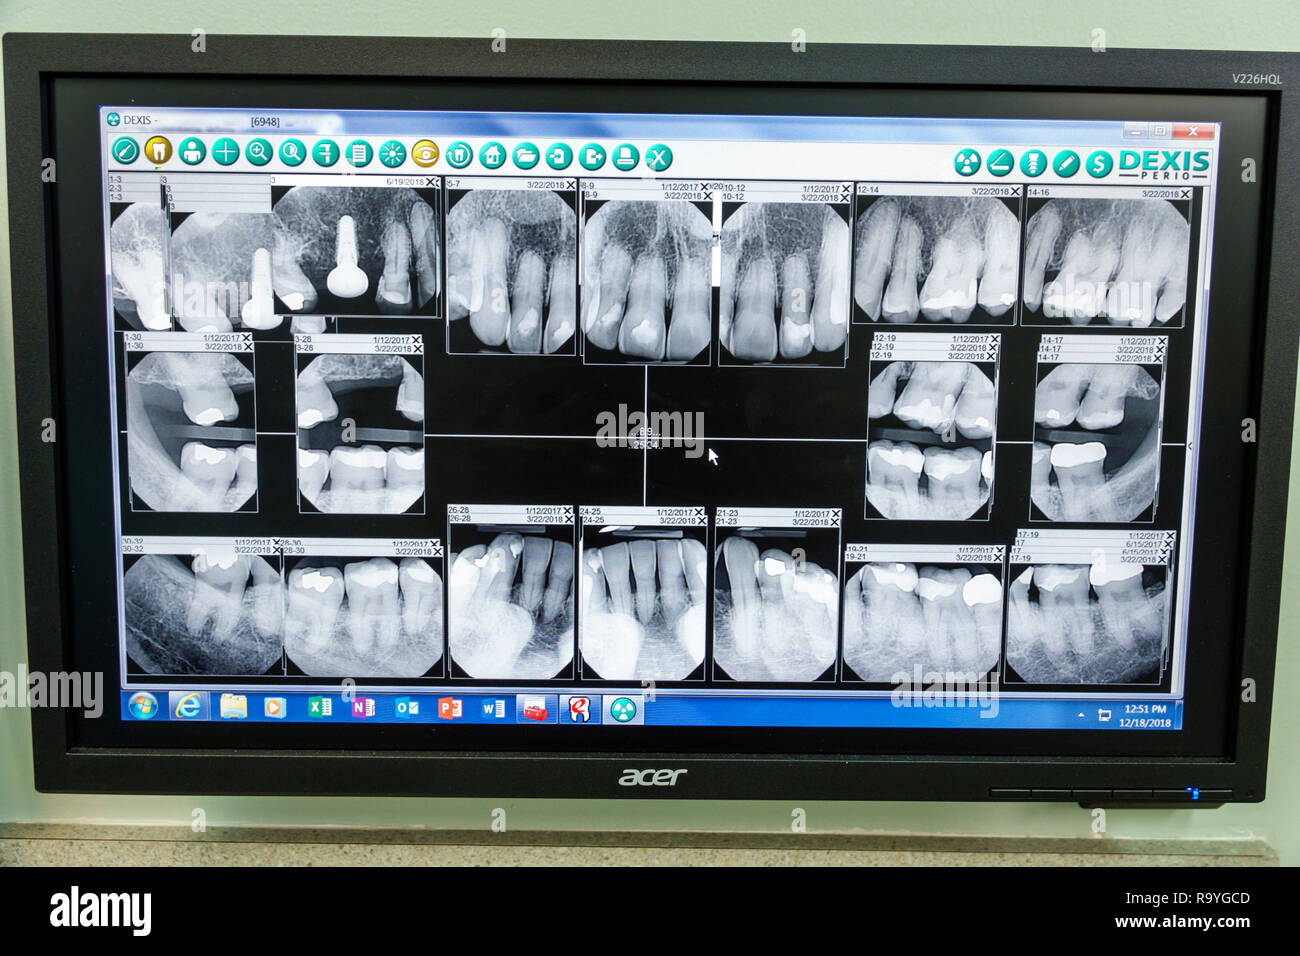 Miami Beach Florida xrays x-rays teeth mouth fillings implant crown dentist periodontist office examination room - Stock Image